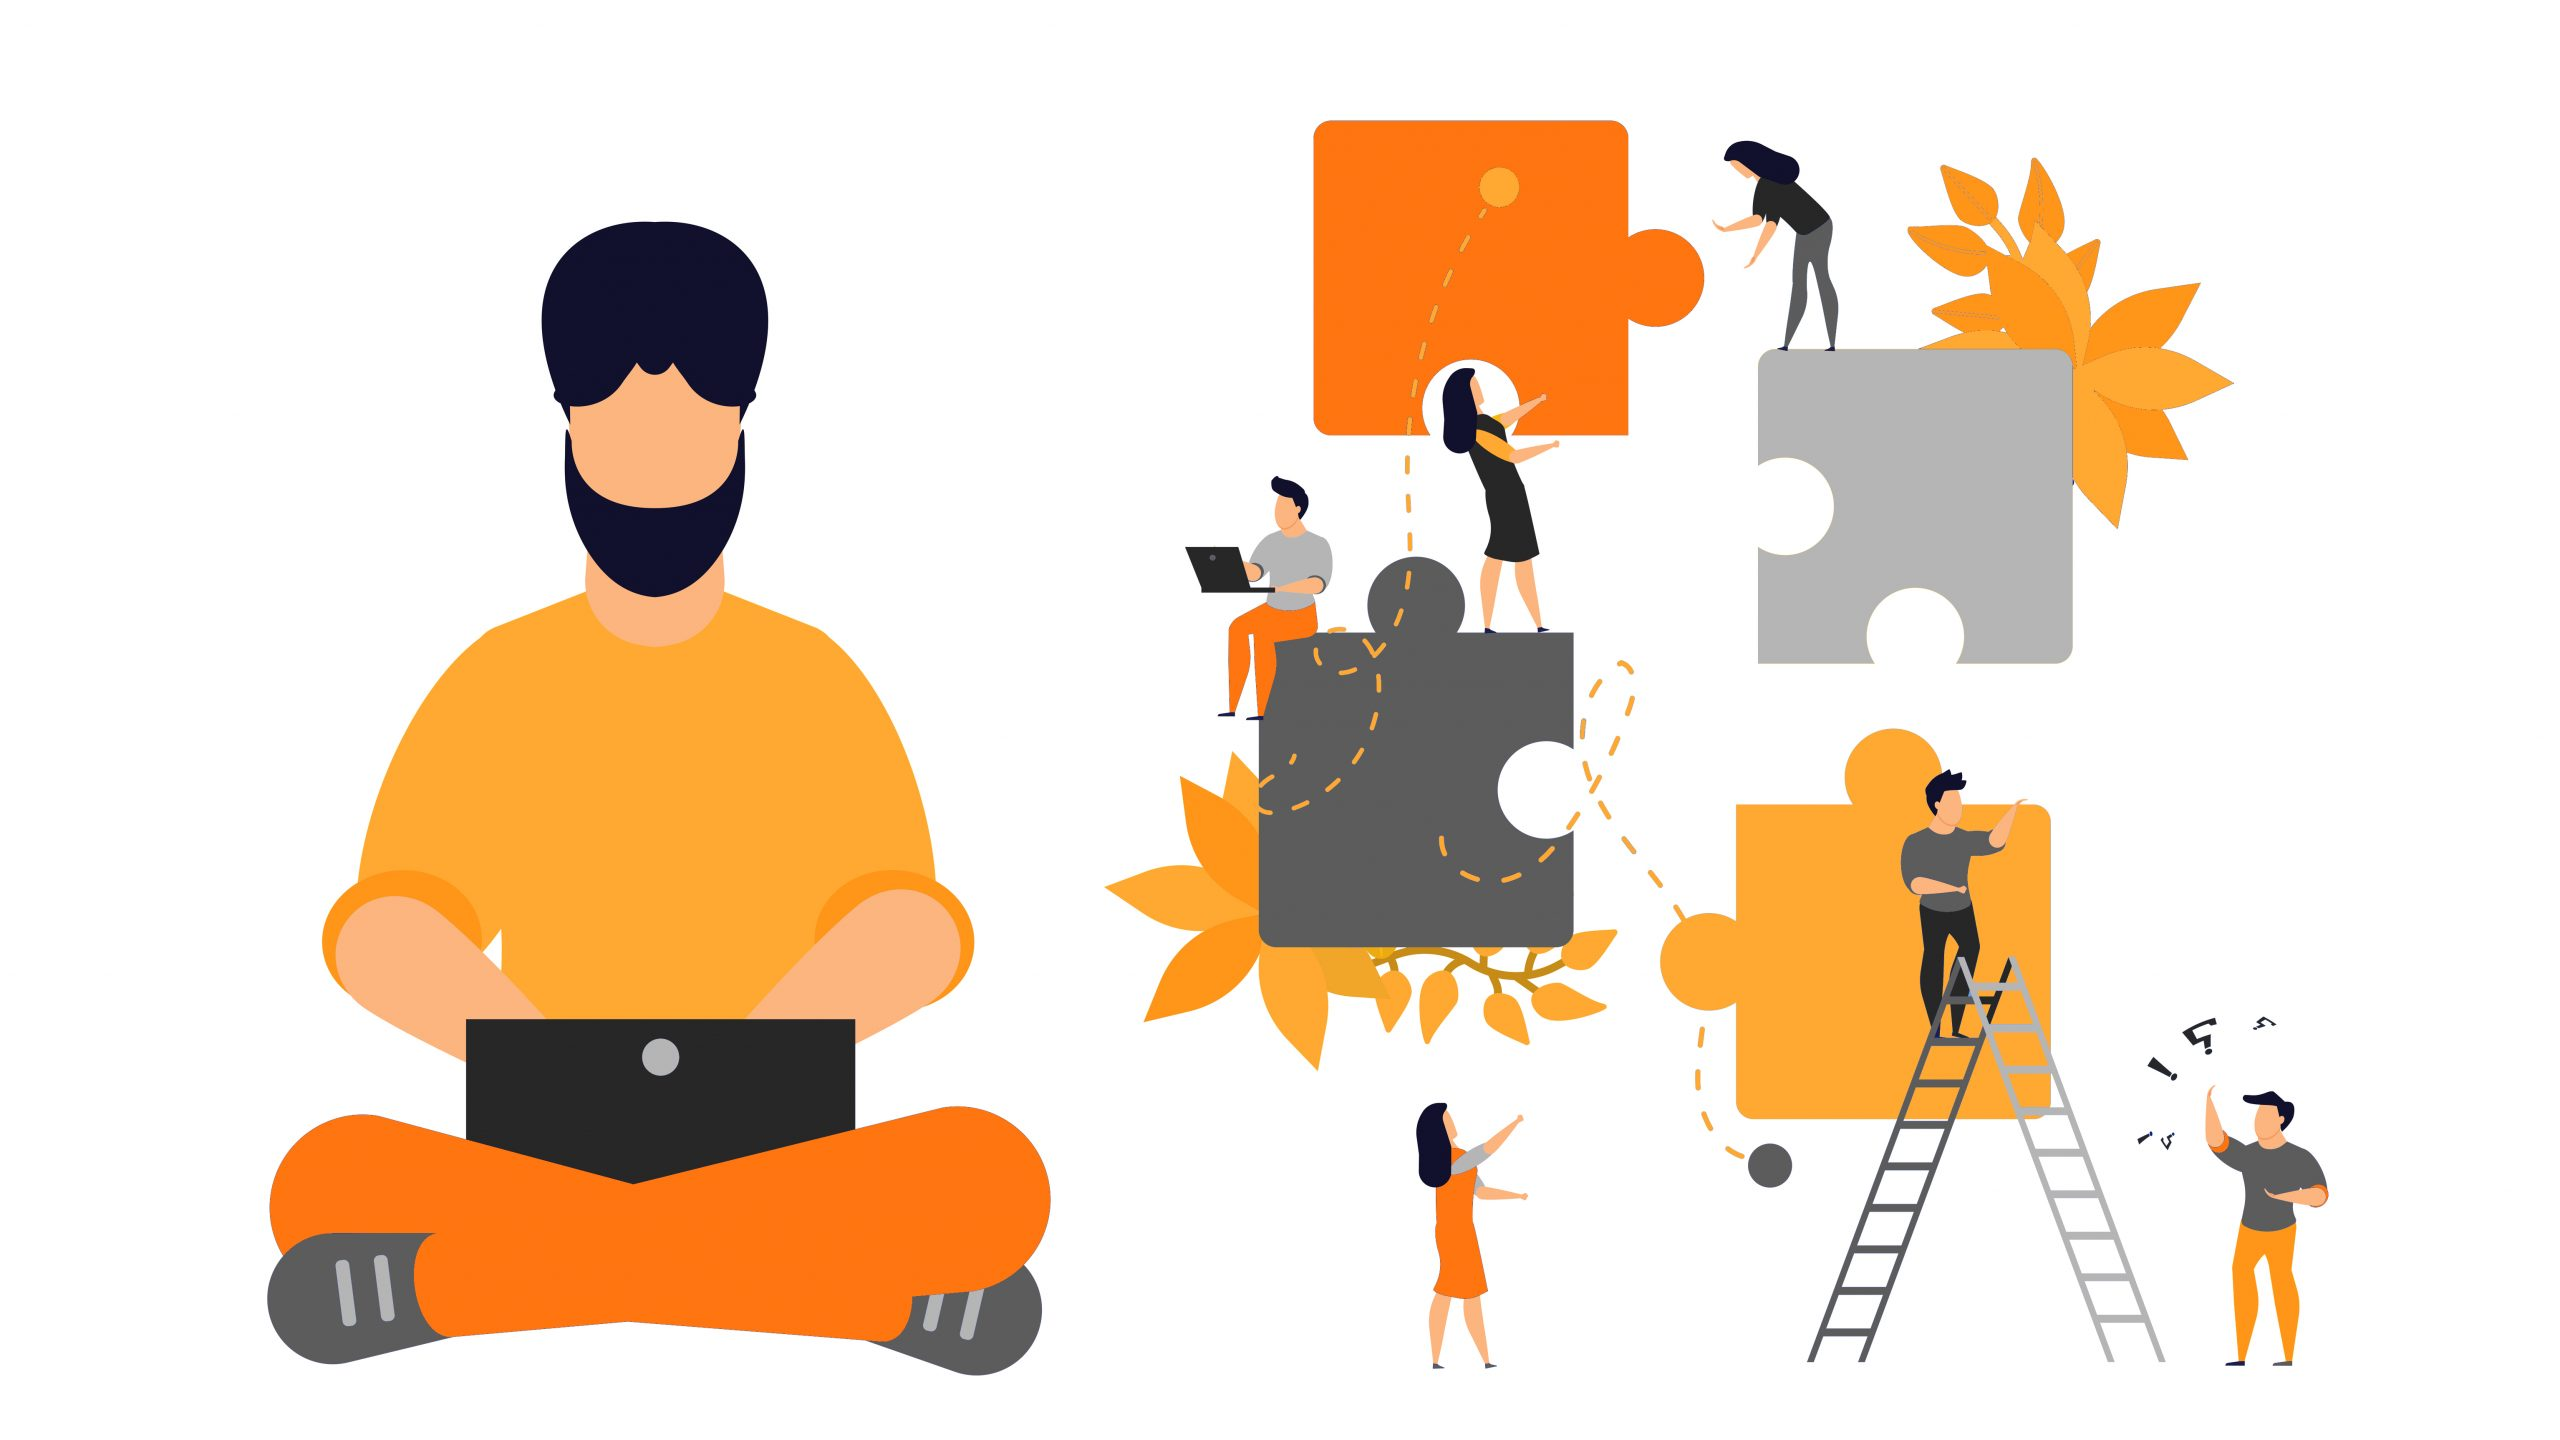 Partnership puzzle vector person business illustration teamwork concept. Piece team cooperation connect jigsaw solution together. Success collaboration strategy work challenge. Office brainstorming